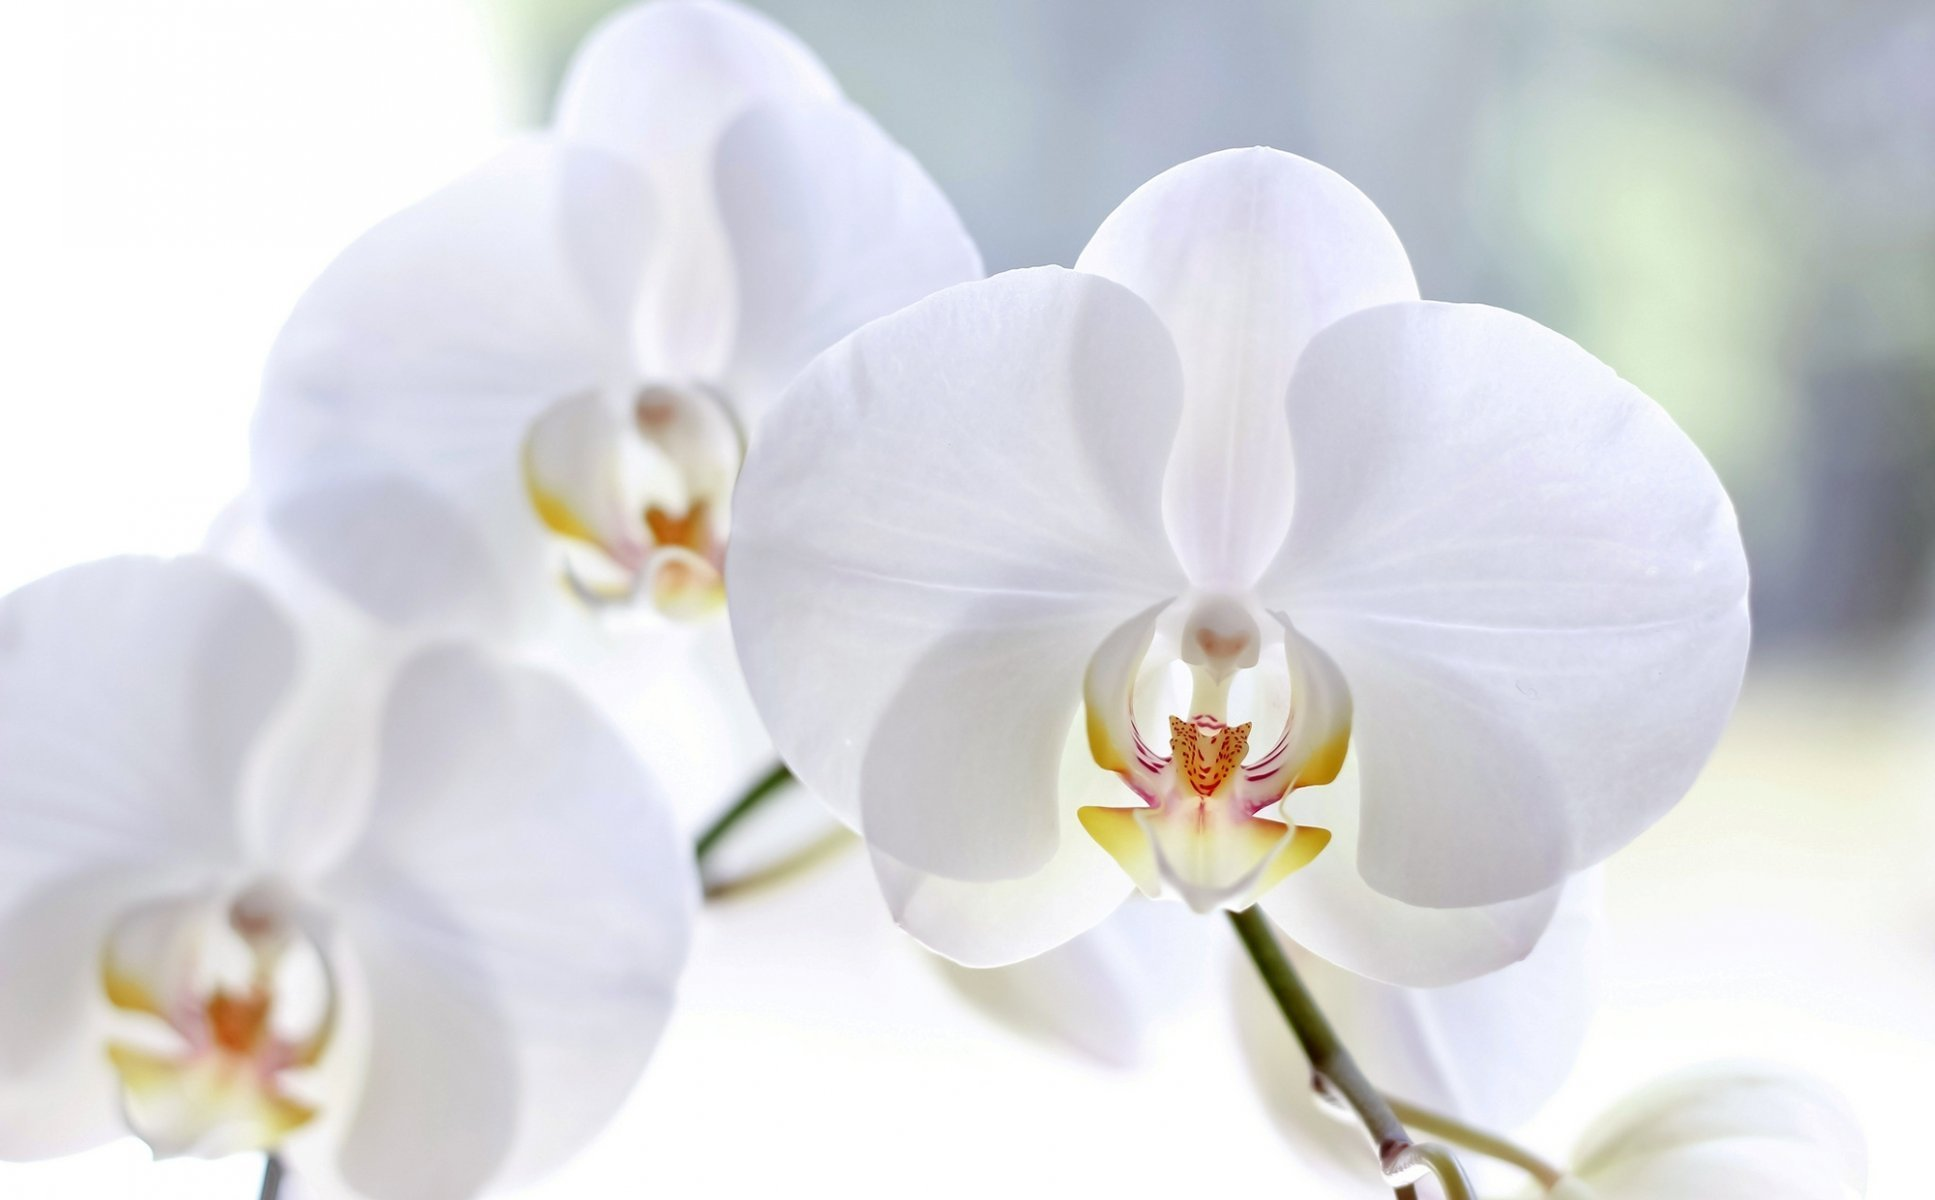 Phalaenopsis Orchid (White) Hawaiian Starter Plant - Approx. 4 - 8 Inches